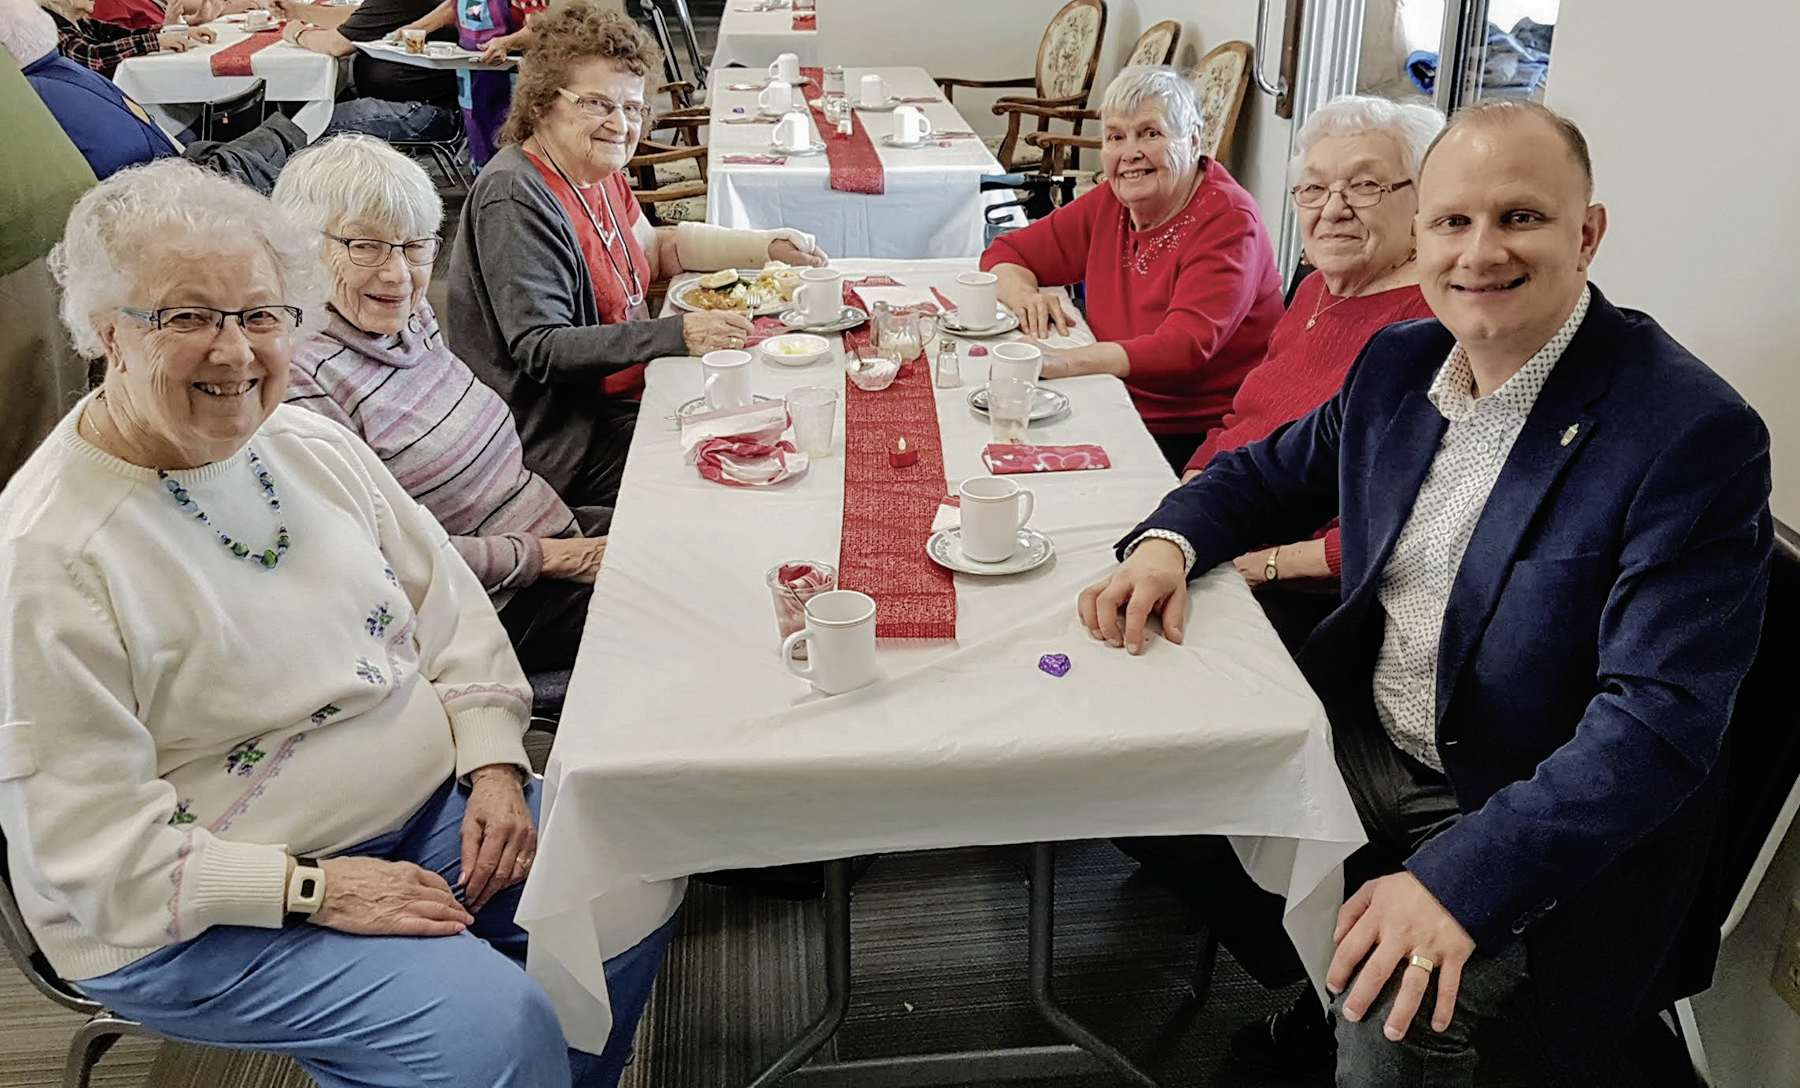 (From left) Helen Hopko, Evelyn Kohut, Sheila Daly, Irene Gaylord, Emily McDougal and Rossmere MLA Andrew Micklefield chatted at a Valentine's Day lunch.